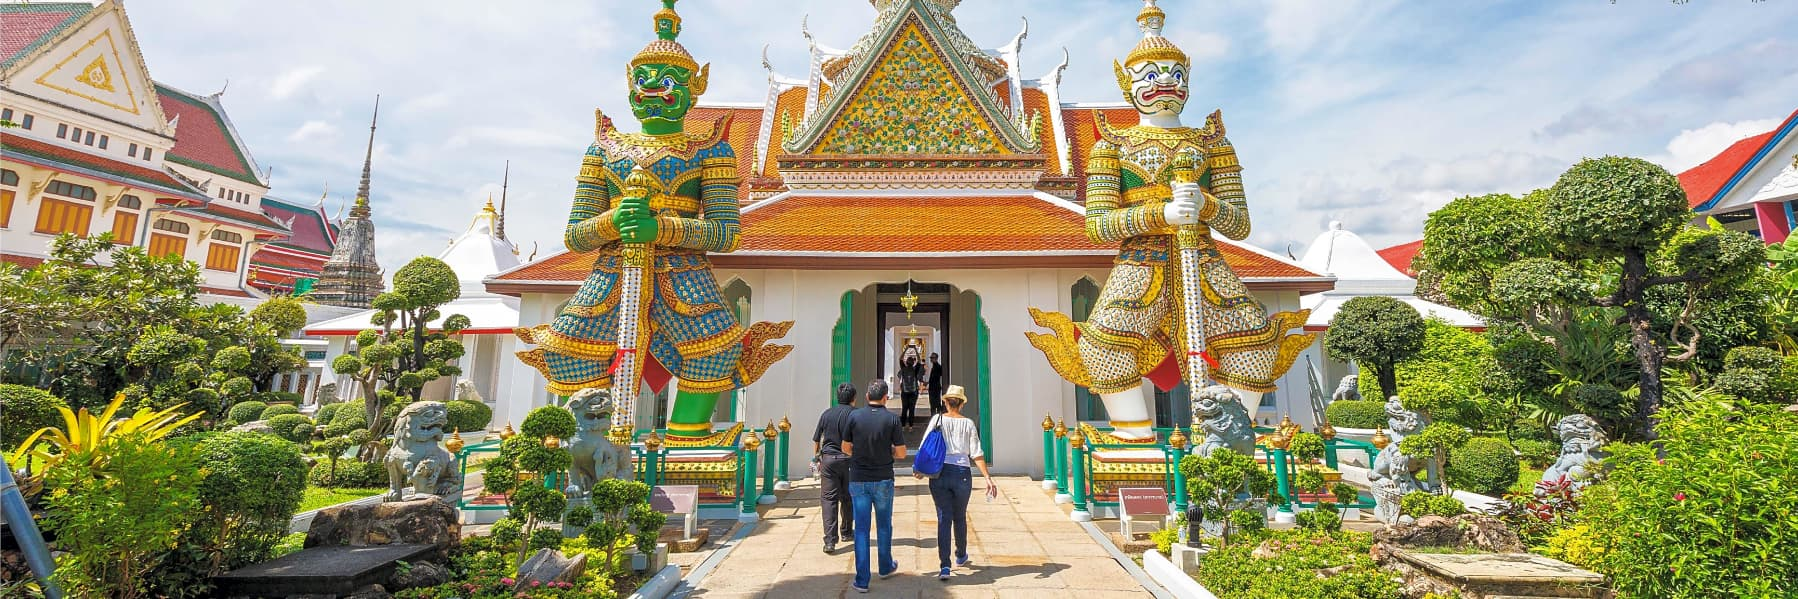 Bangkok Temples Instagram Tour: Wat Arun, Wat Pho & Wat Saket (Small Group)– Half Day gallery